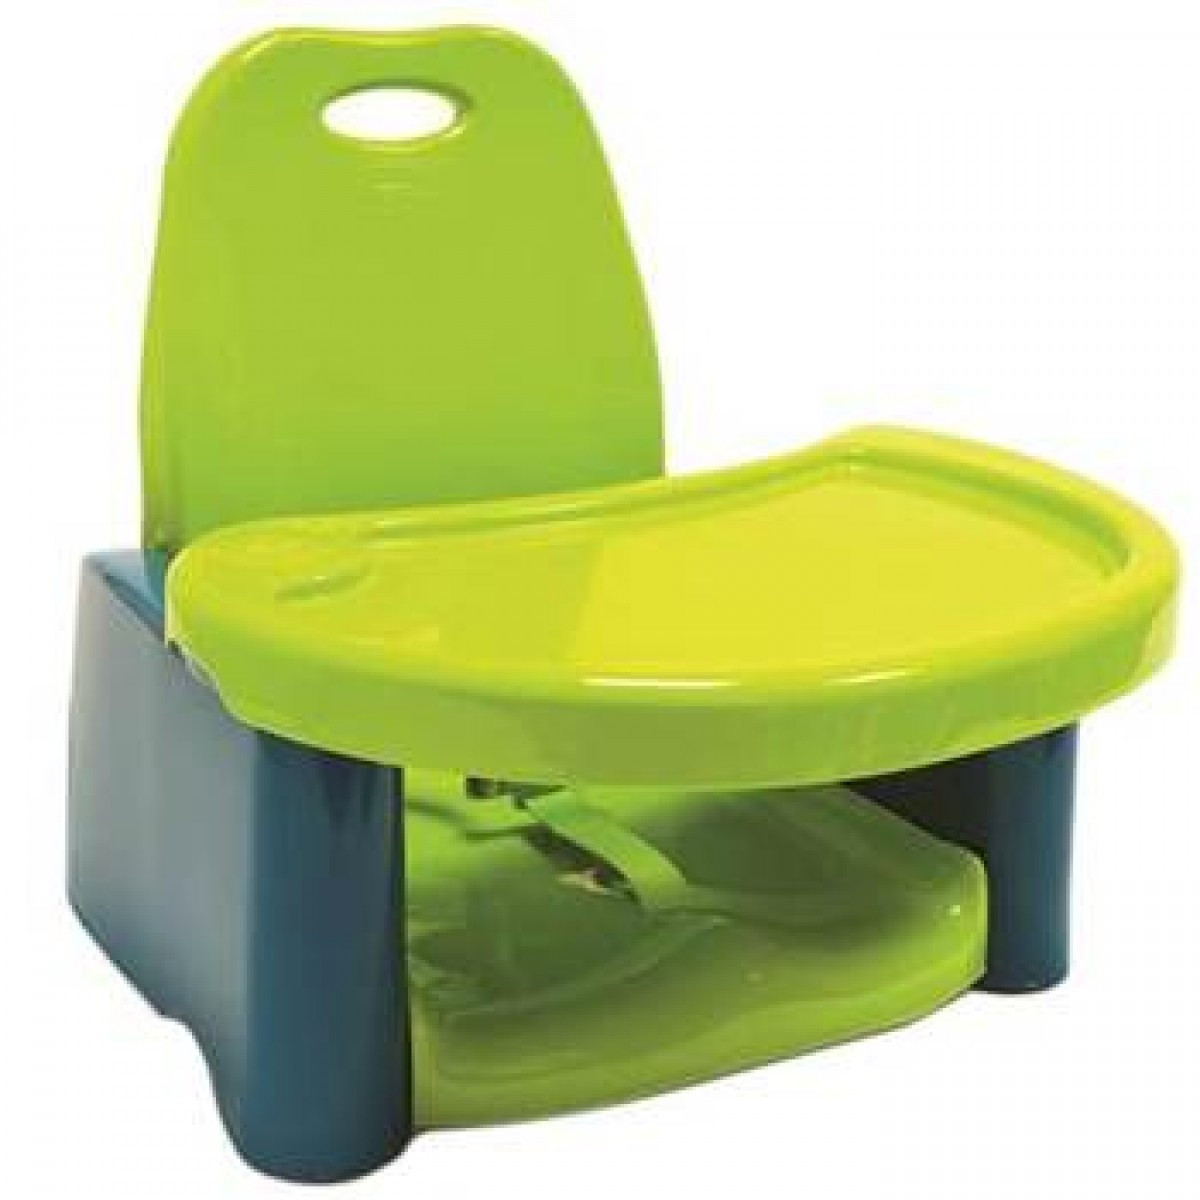 Baby Chair For Eating Tomy Swing Tray Adjustable Booster Seat Feeding Chair Baby